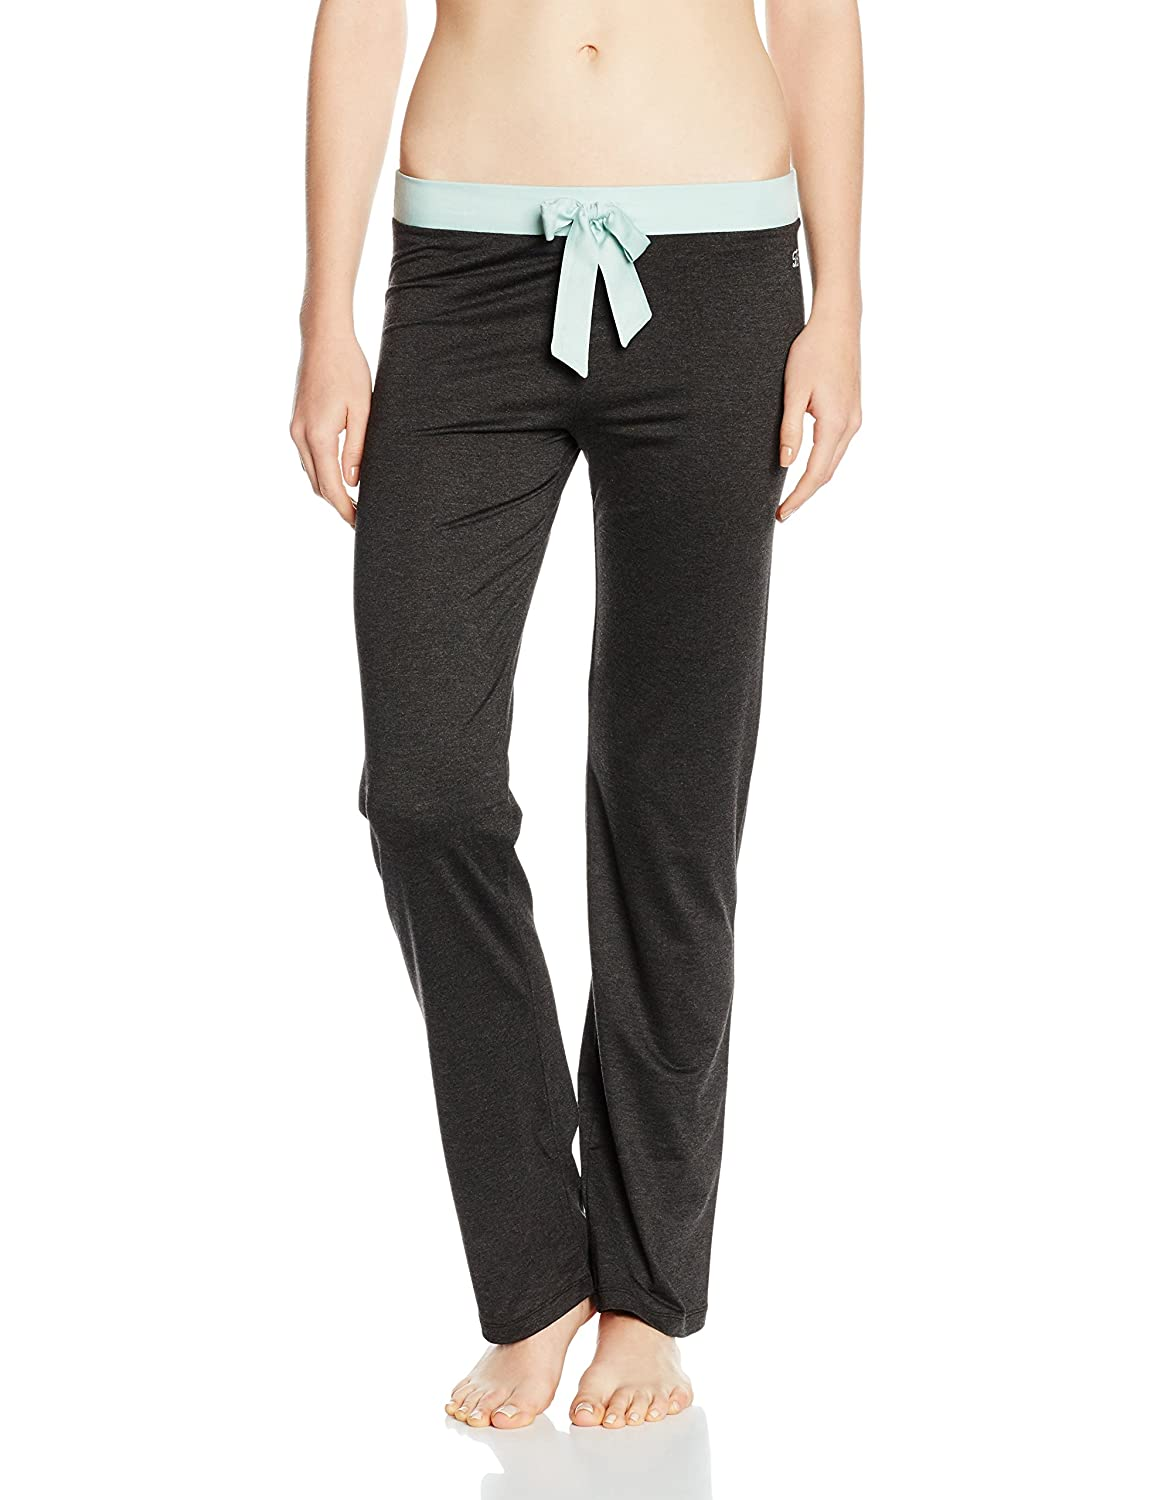 Tommy Hilfiger Women's Modal Stretch Pant Fashion Trousers